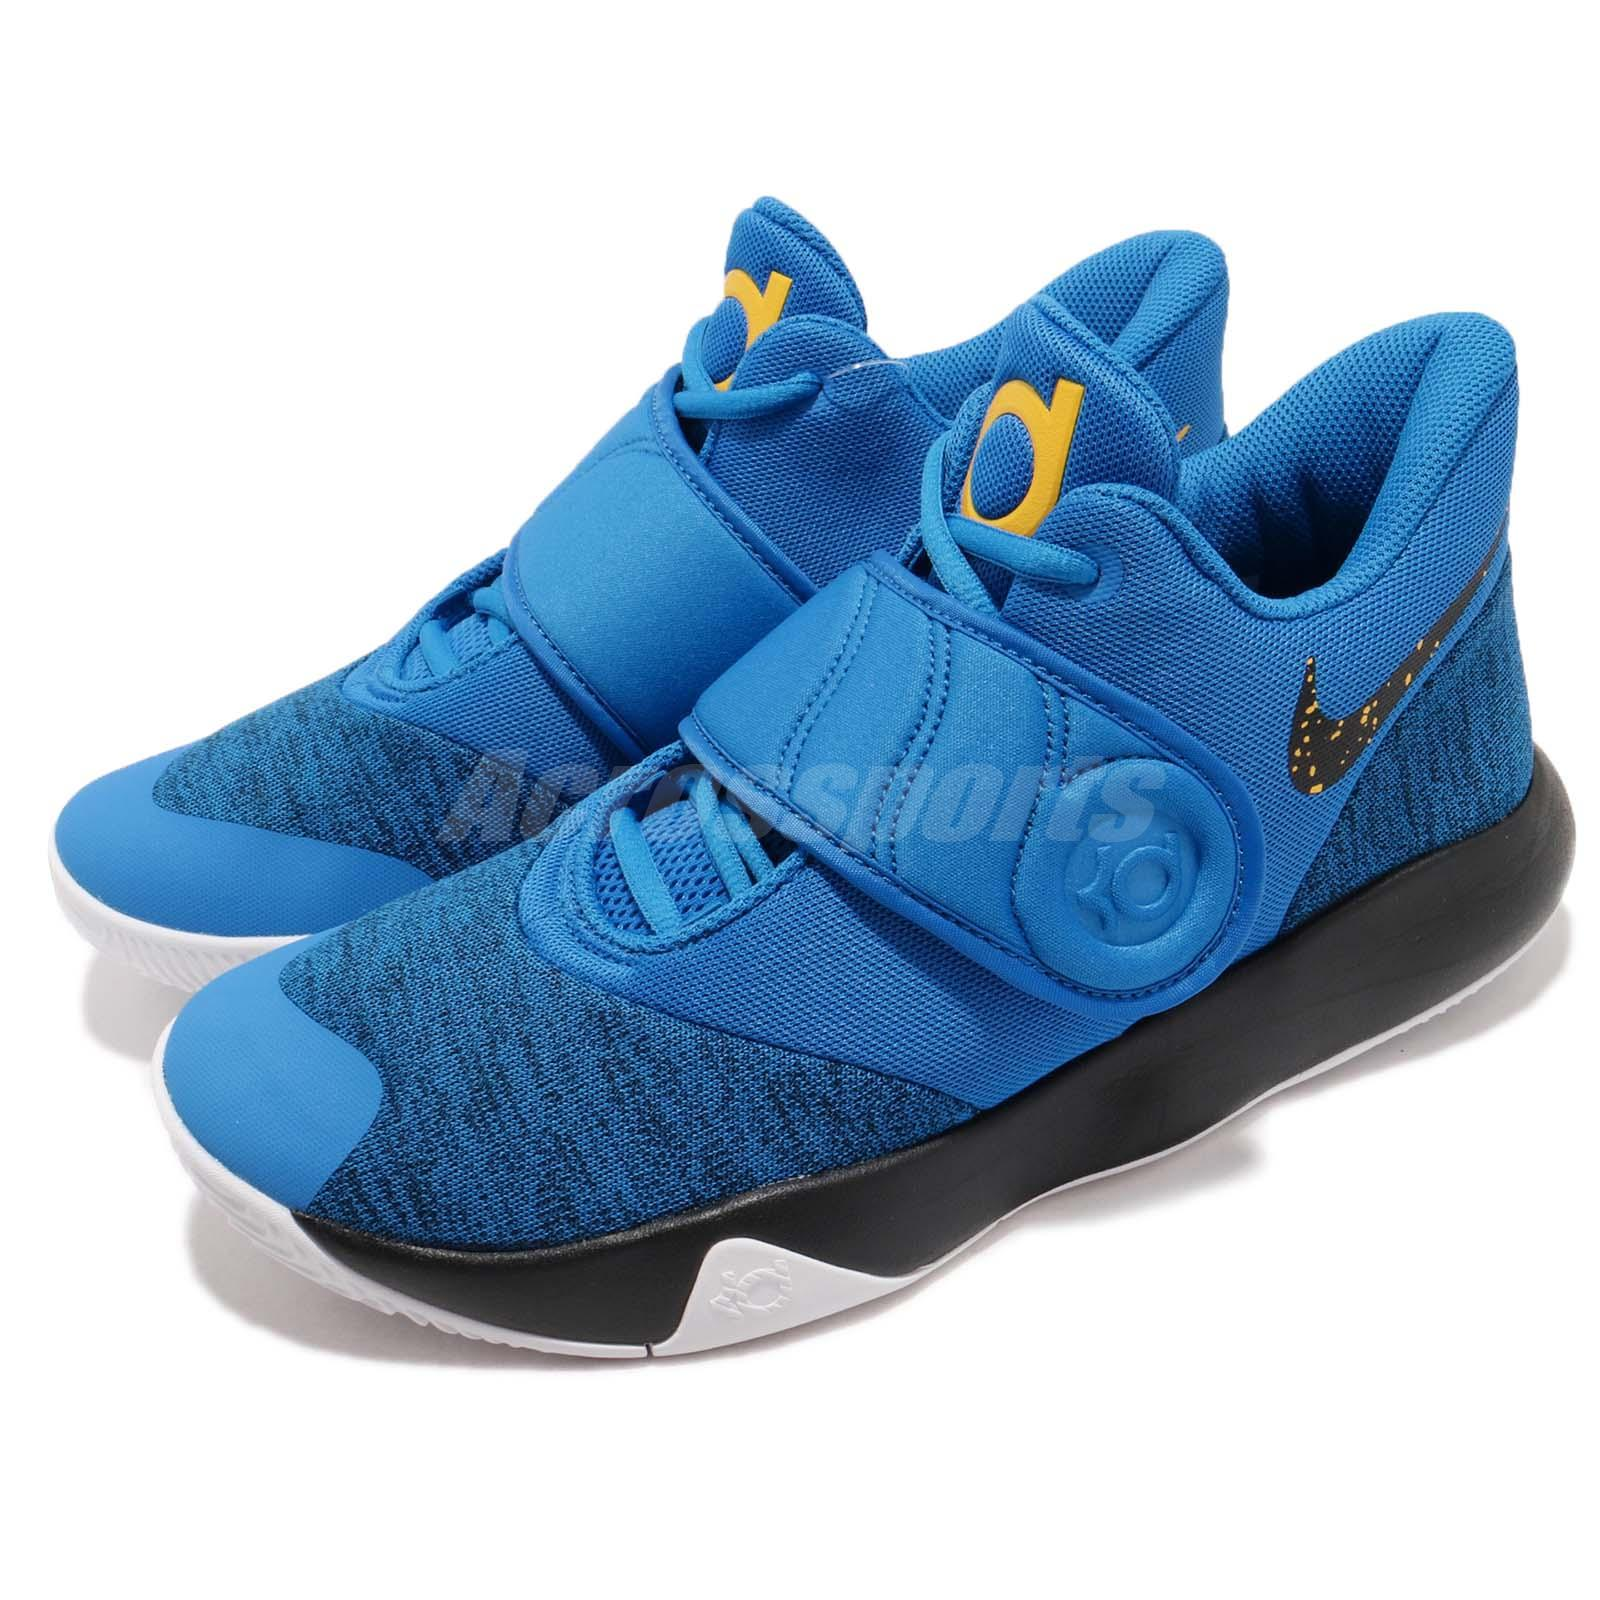 kd trey 5 ii blue Kevin Durant shoes on